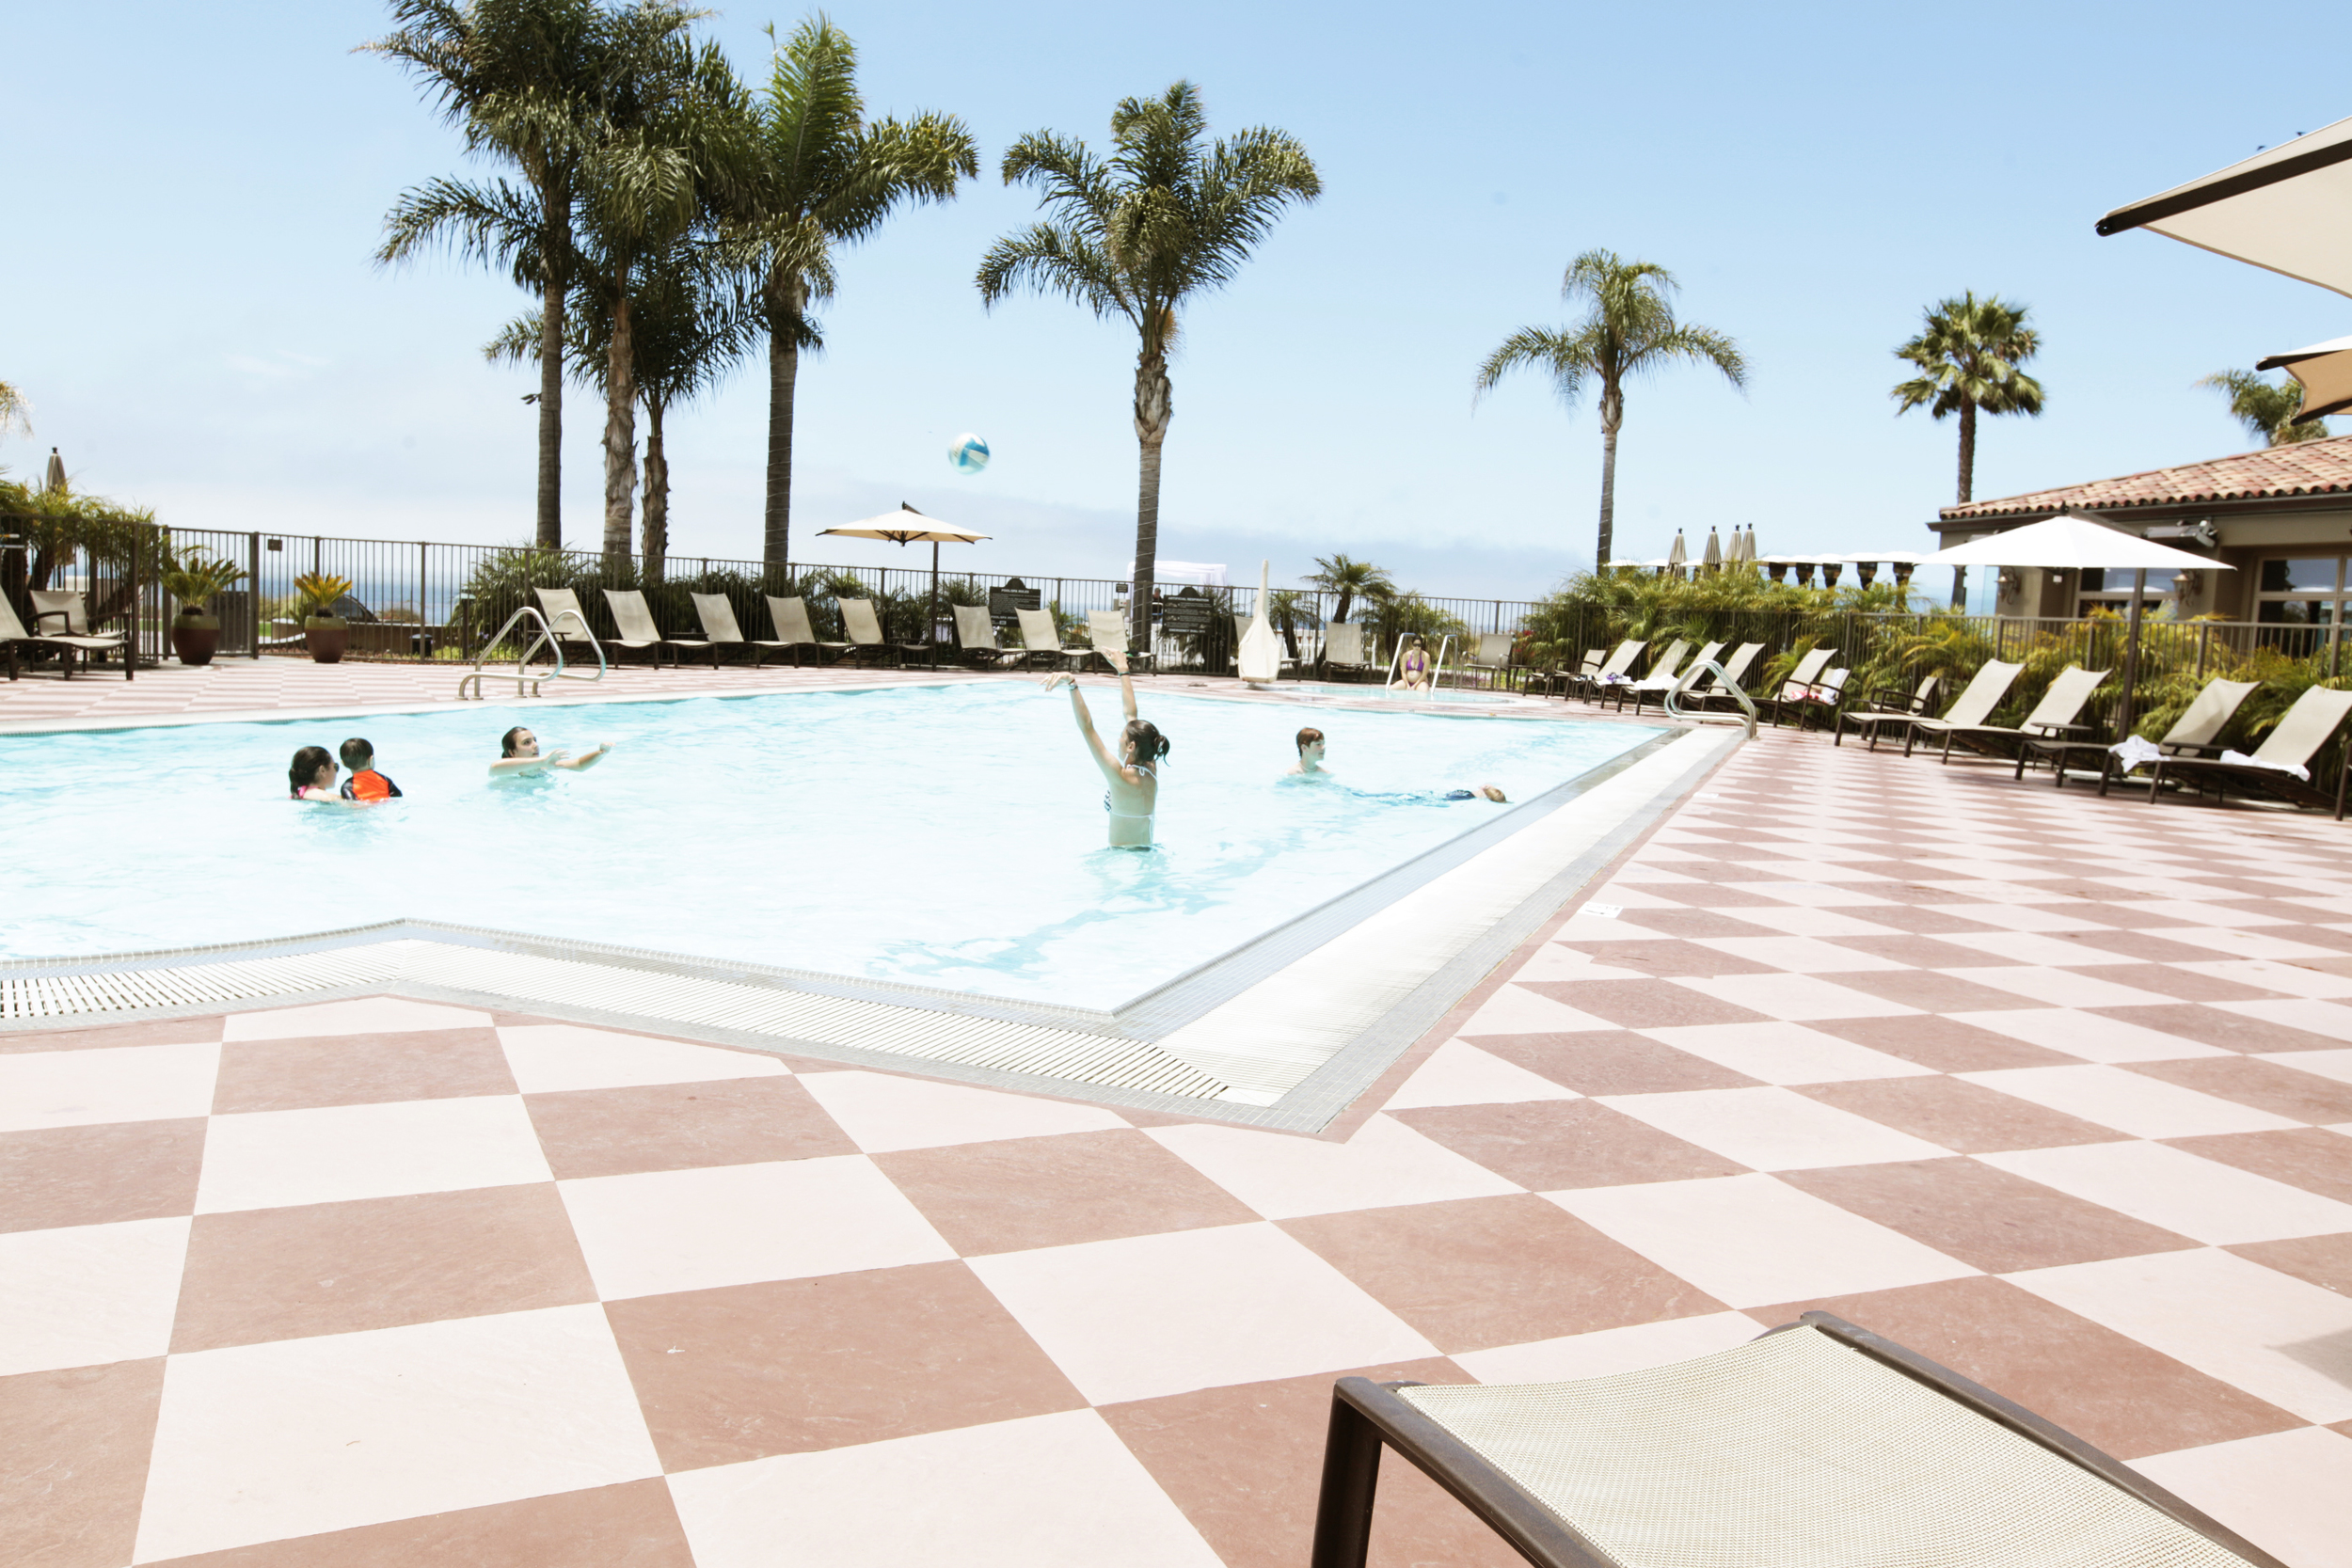 Mojave Slate and Sepia Slate, as seen at Dolphin Bay Resort and Spa in Pismo Beach, CA, will be among the Life Floor portfolio produced in the United States.